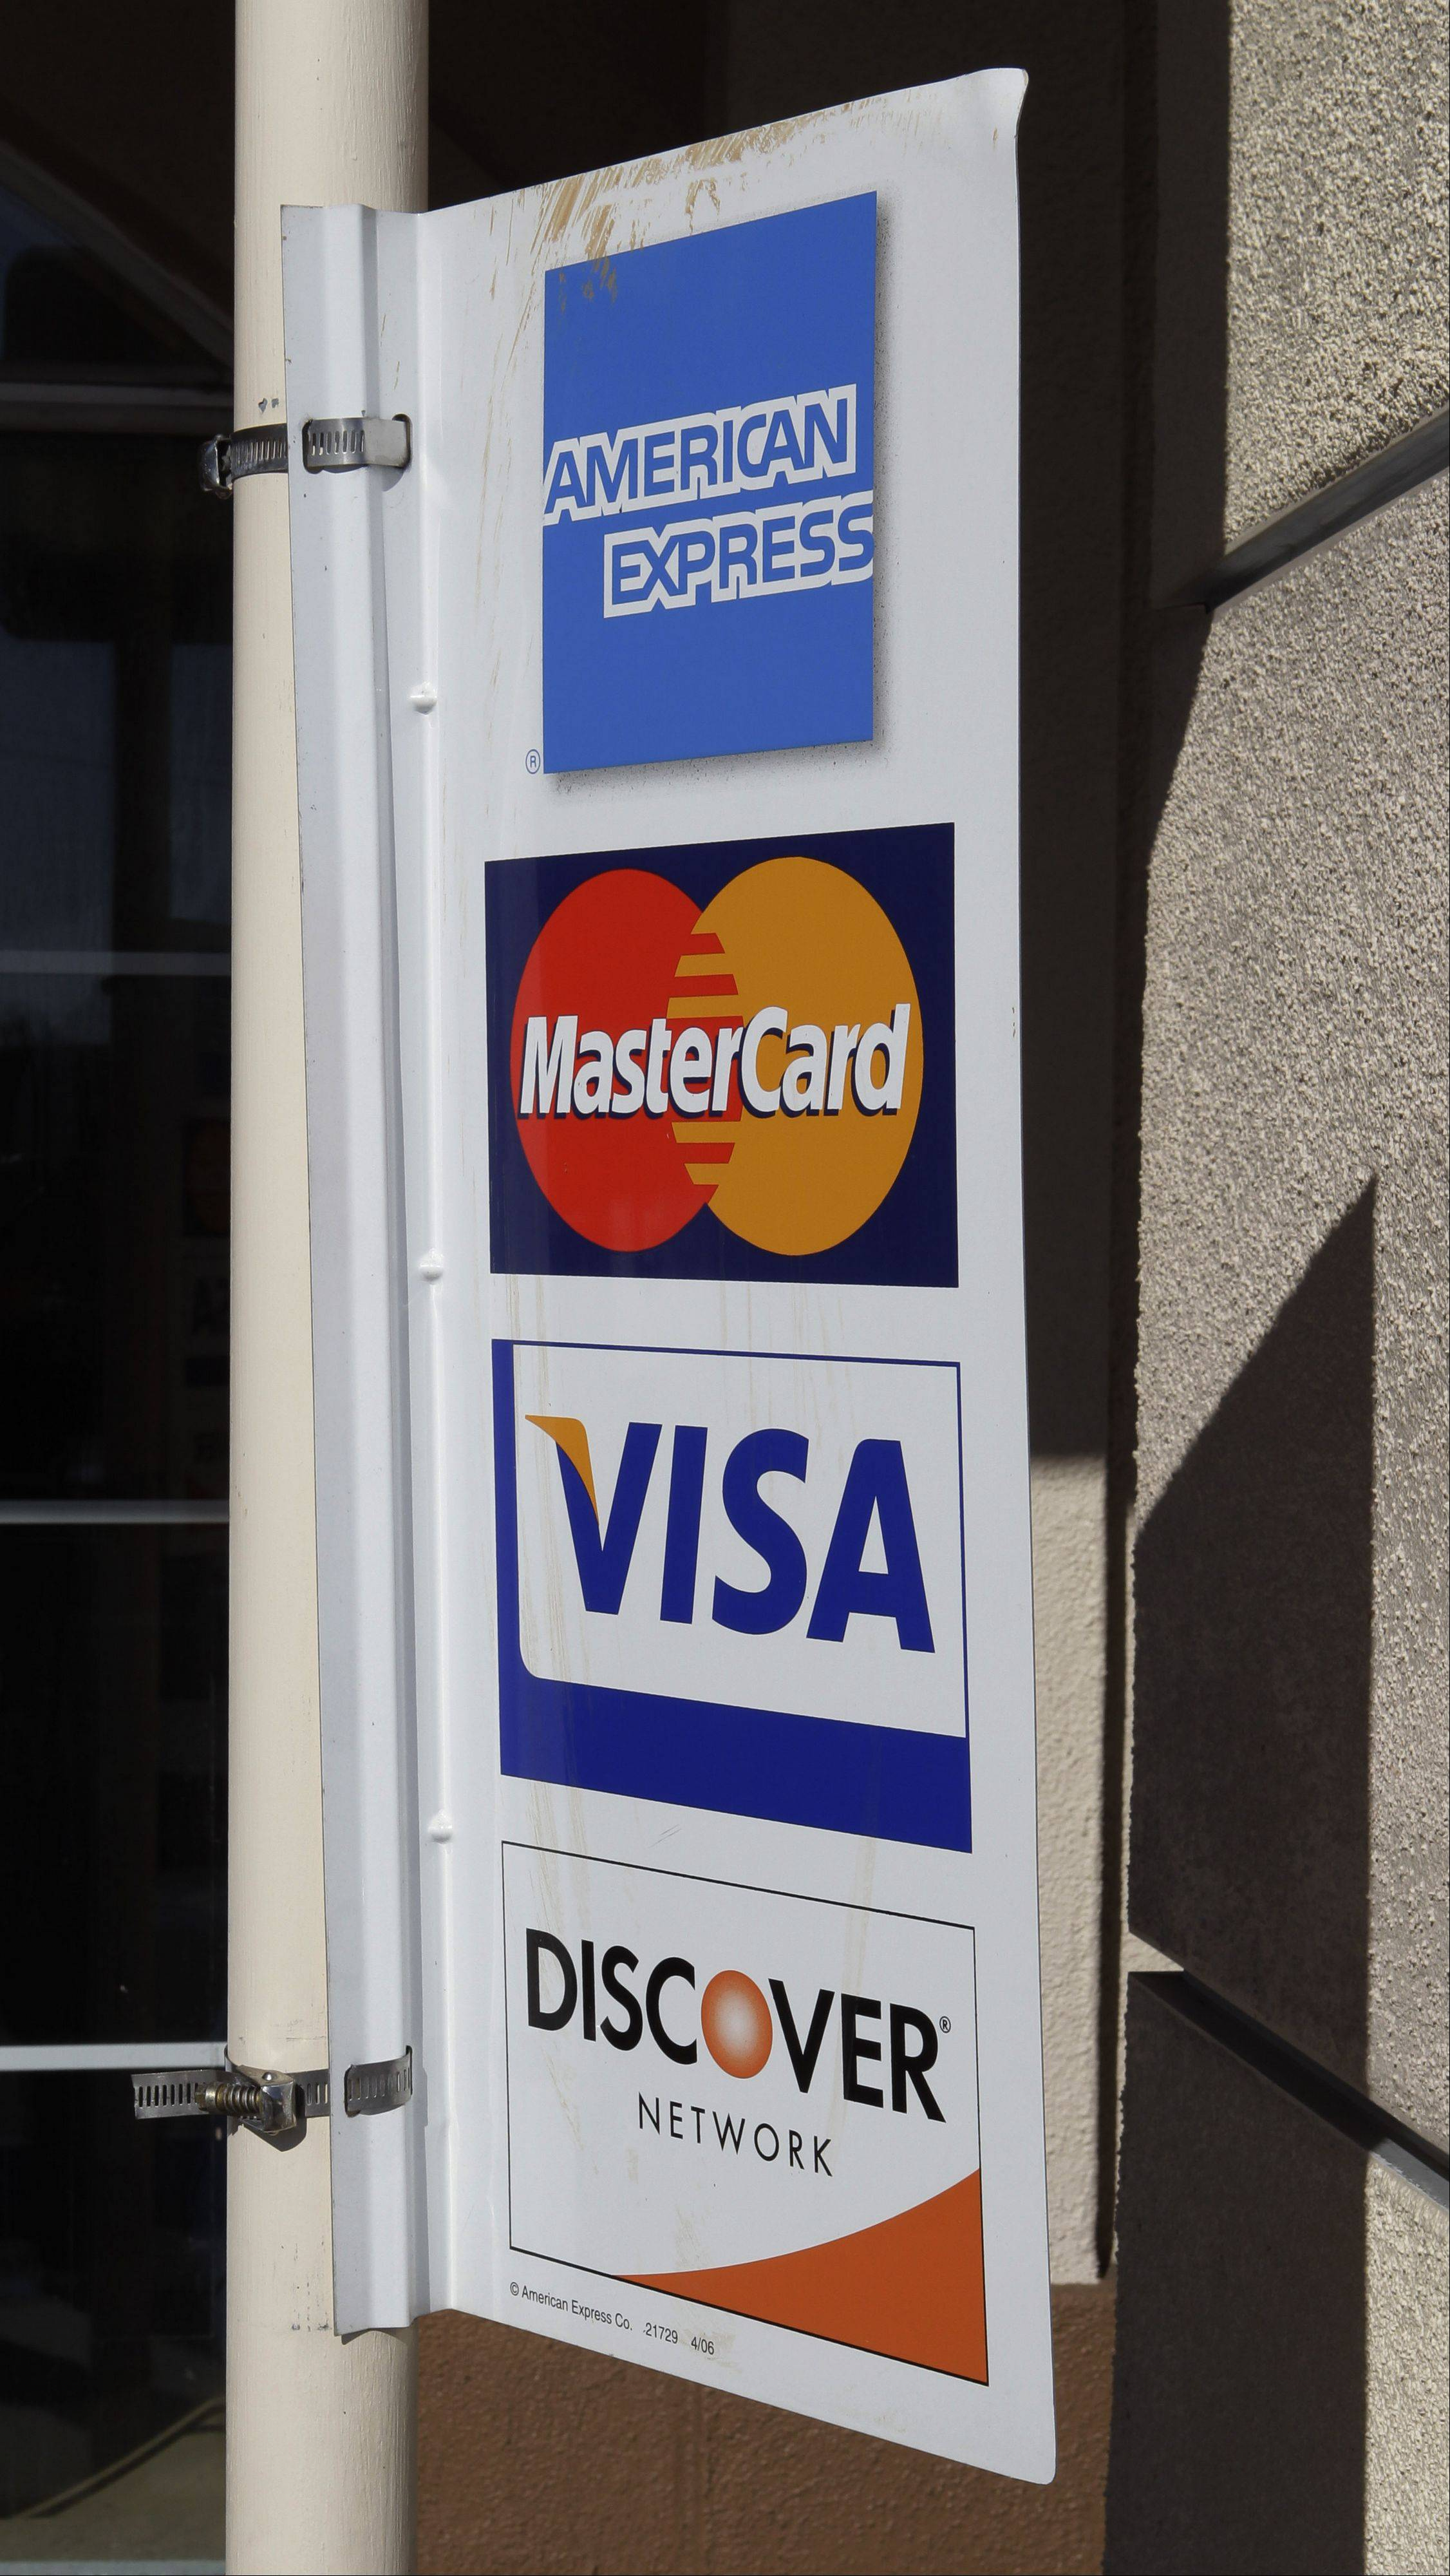 Retailers across the state can now charge consumers who pay by credit card a fee of up to 4 percent, but a suburban lawmaker has penned a proposal that would prohibit the practice again.